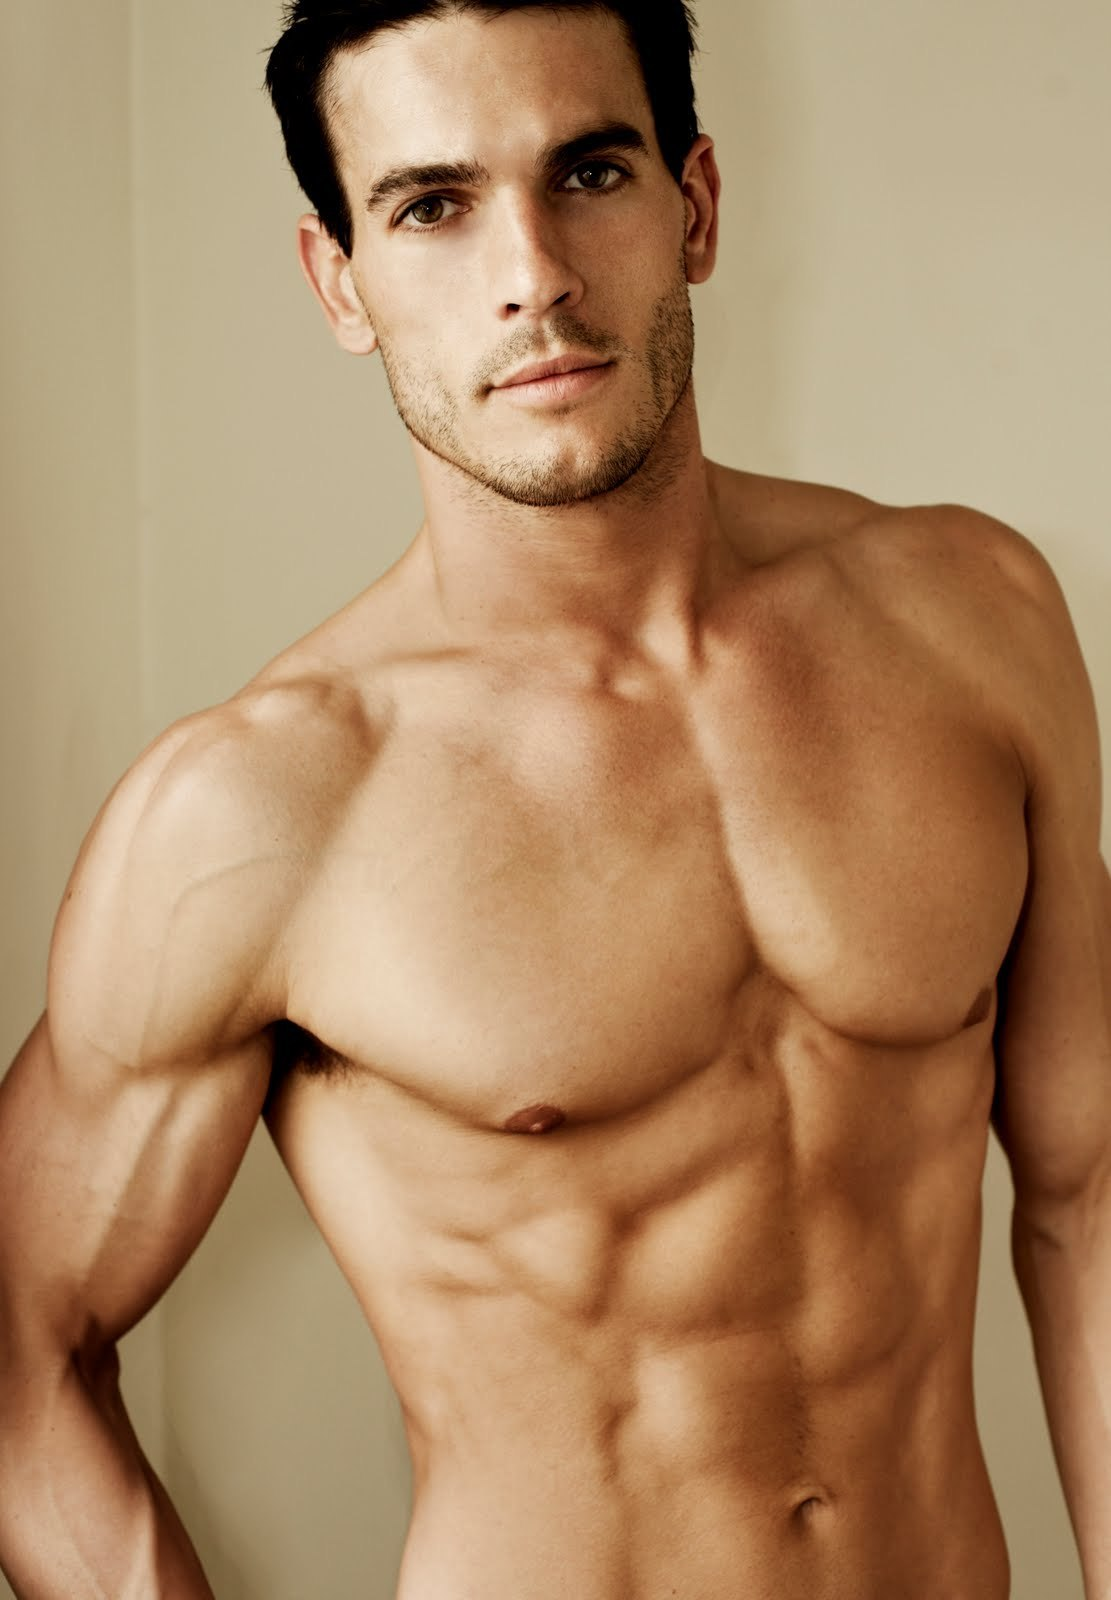 Male Models images Shirtlessness | Joshua Kloss HD wallpaper and ...